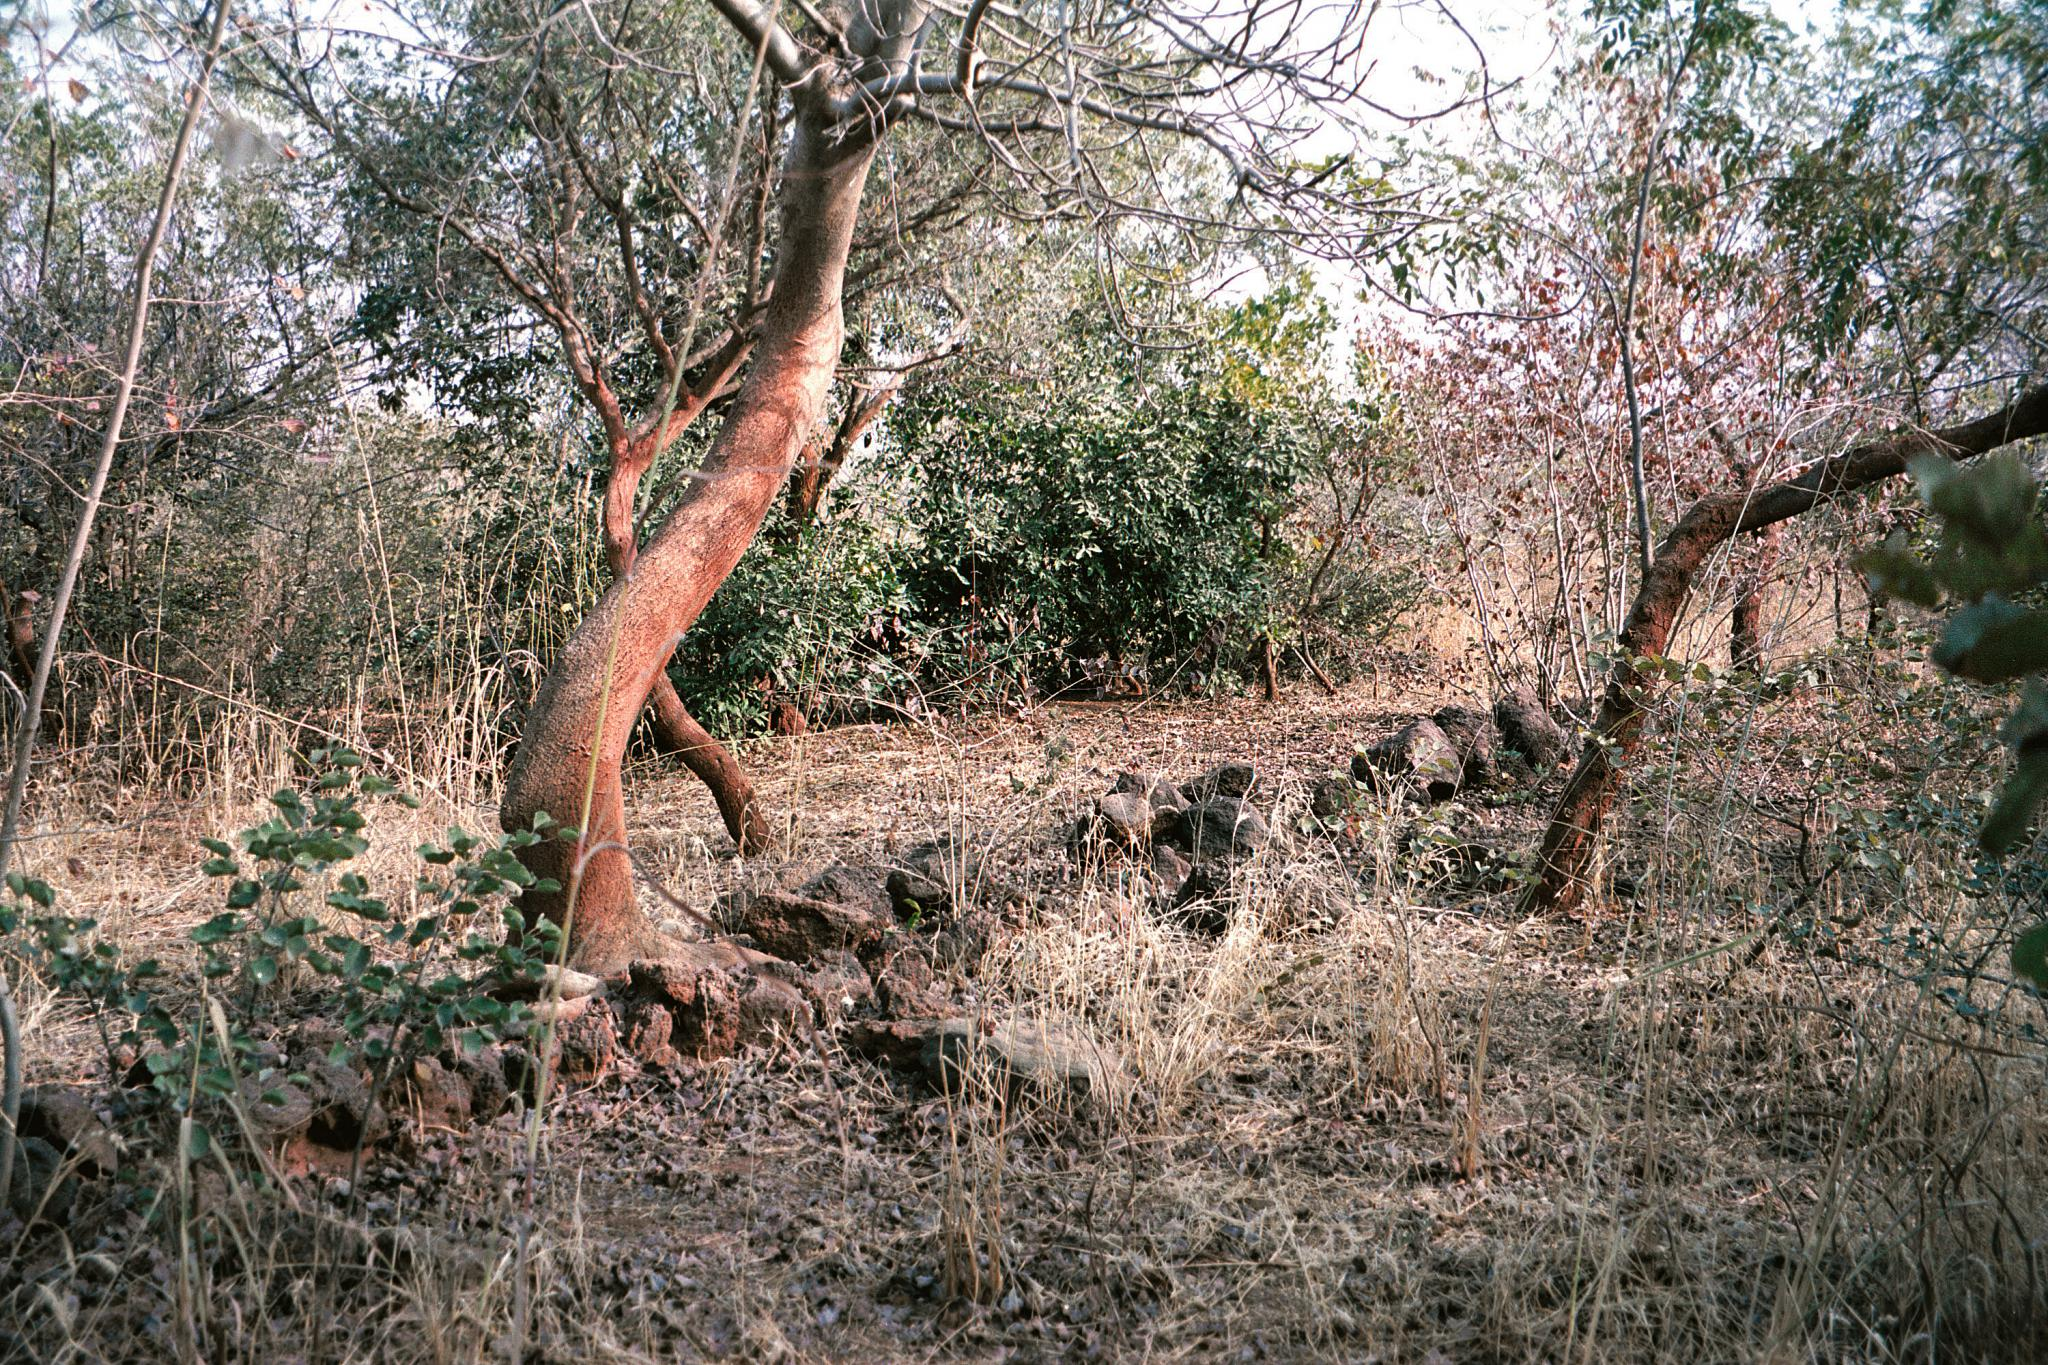 Part of the biodiverse forest created by Yacouba Sawadogo, a farmer innovator near Ouahigouya, Burkina Faso. In 1979, this was a barren plateau until he began rehabilitating his land by planting trees and capturing rainfall and protecting trees on his land. © Gray Tappan/USGS